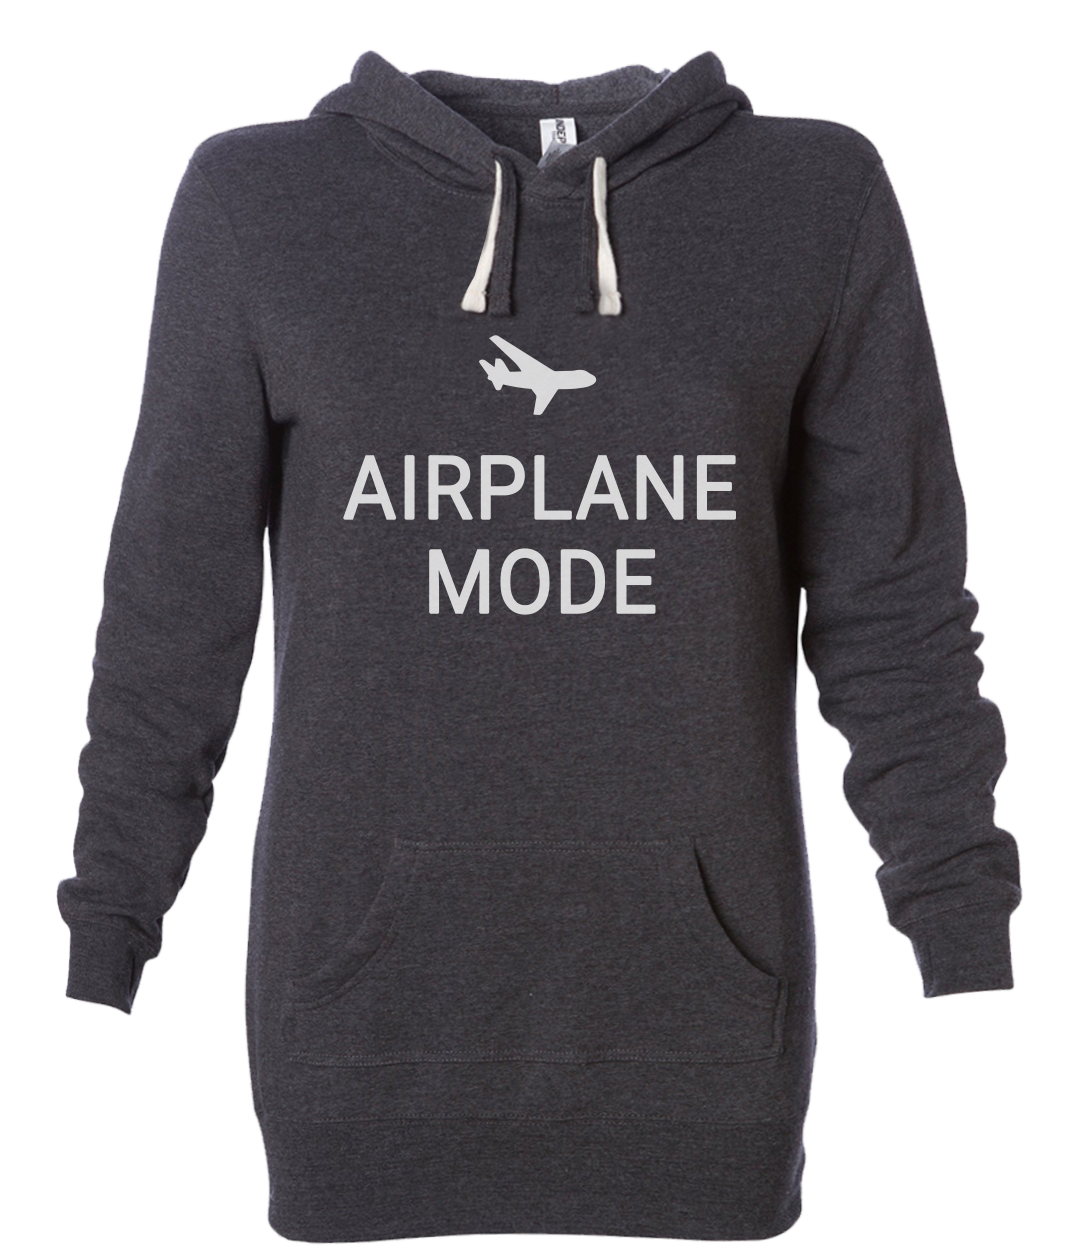 airplane mode hoodie dress carbon